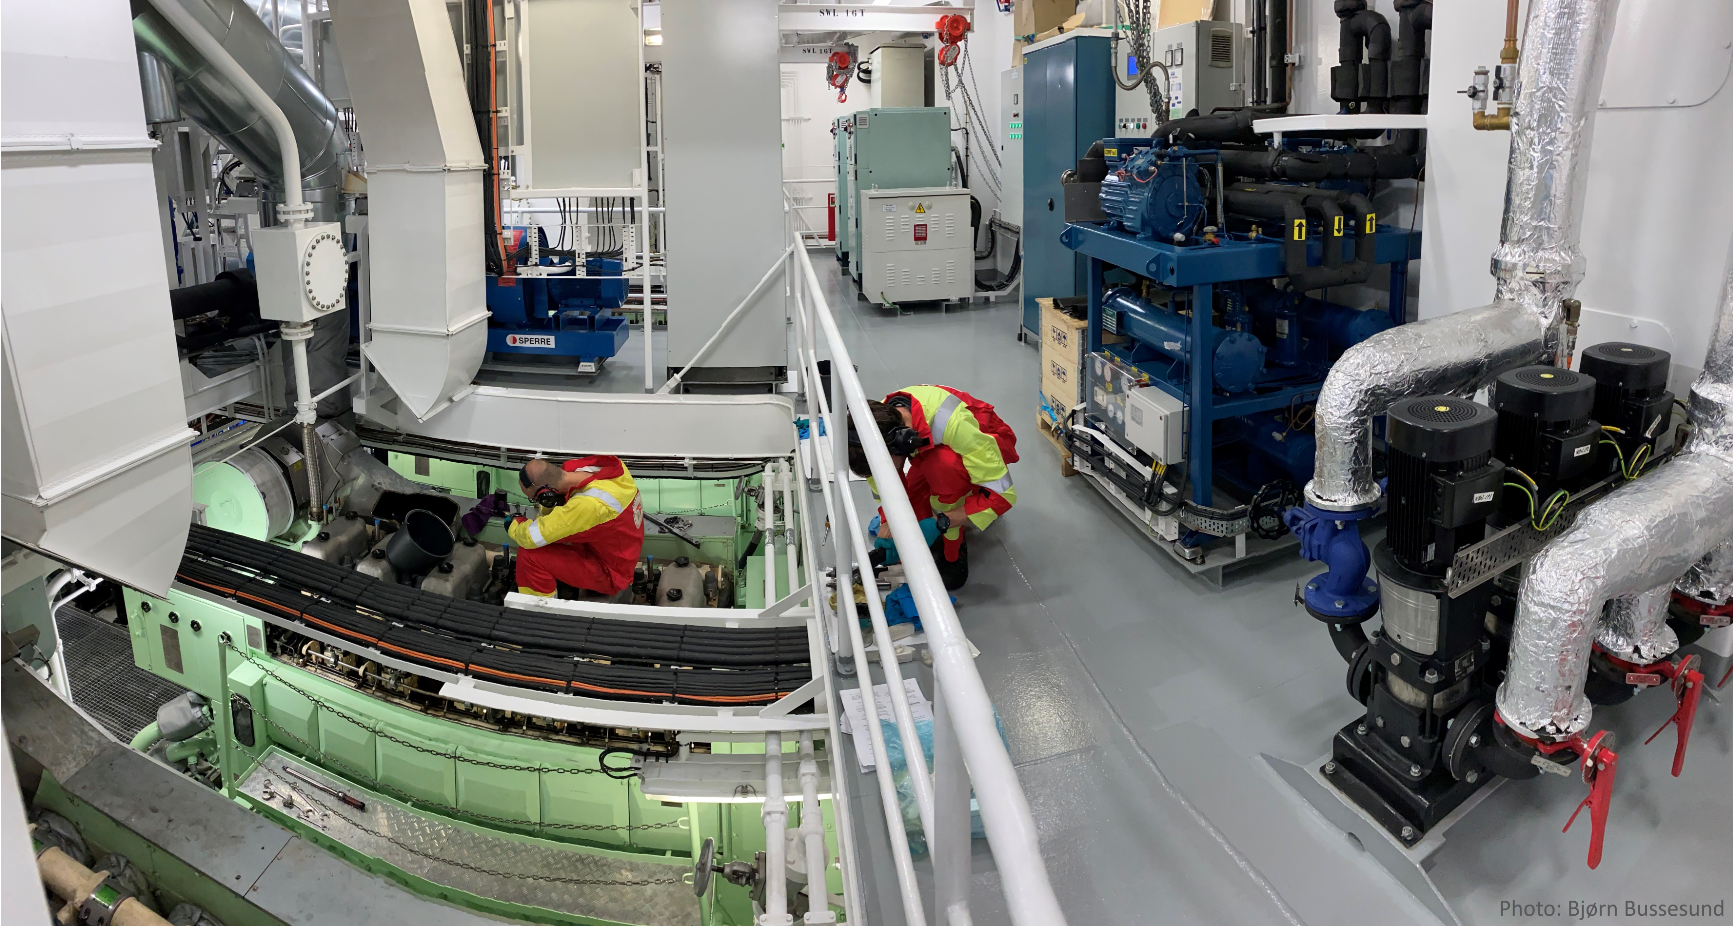 August: Maintenance in the engine room